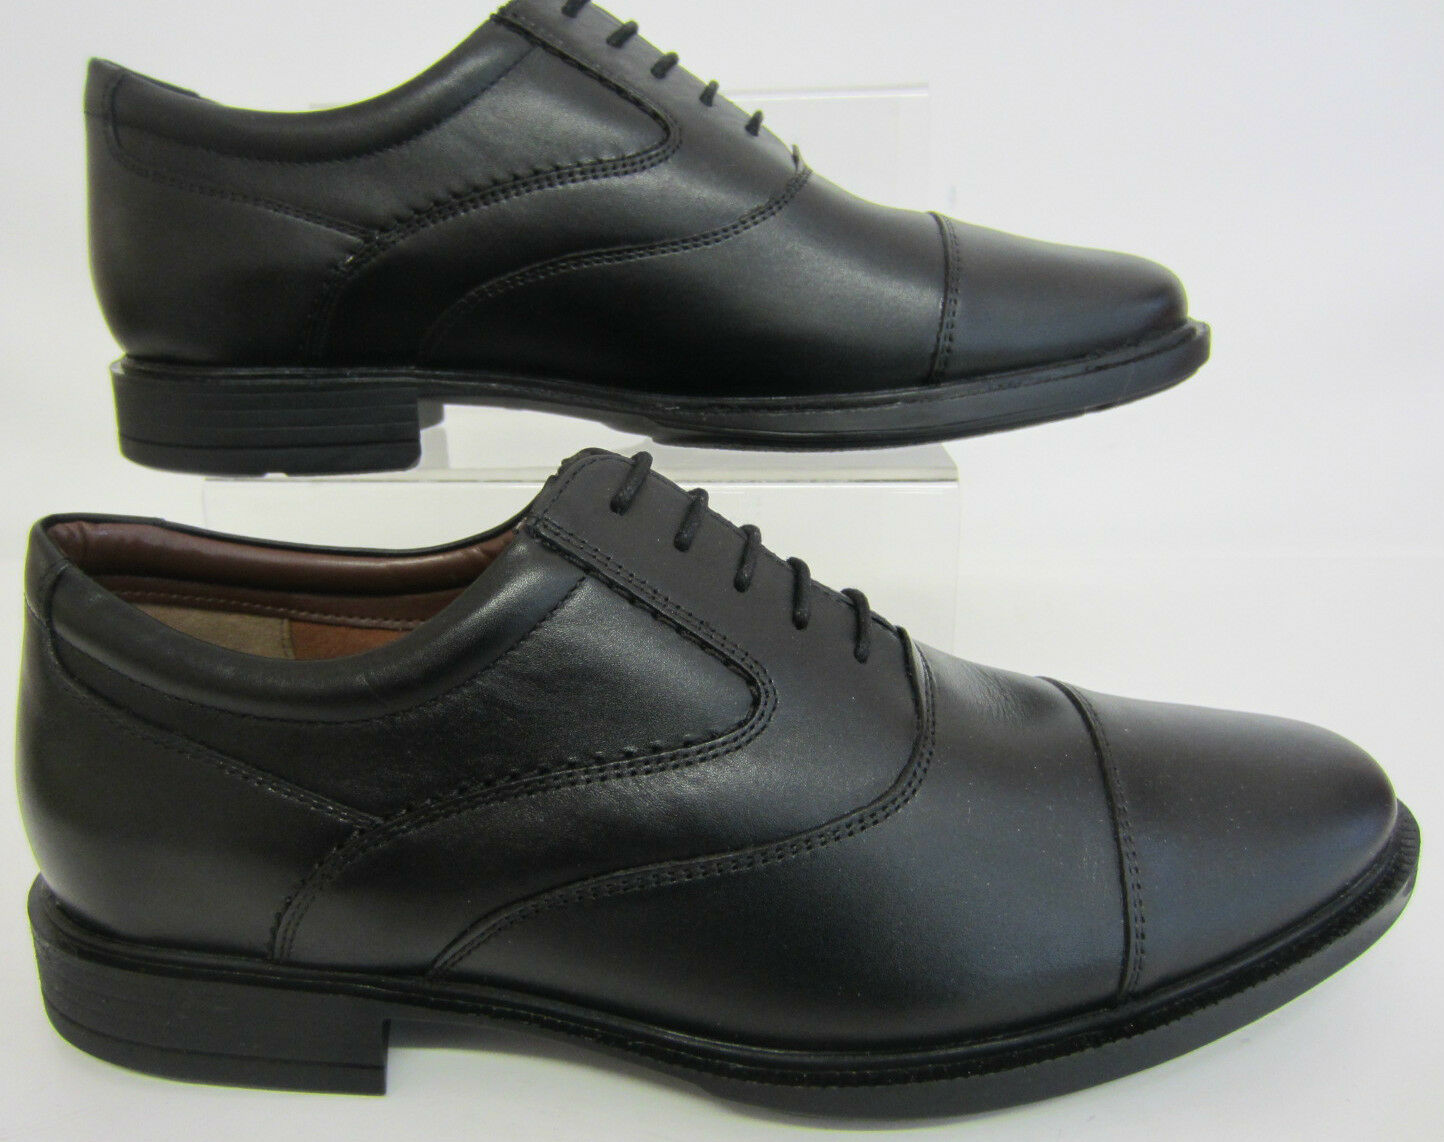 HUSH PUPPIES hommes hommes PUPPIES Rockford 3 DENTELLE NOIRE CHAUSSURE h13139000 uk6x12 (r19b) 92aa89